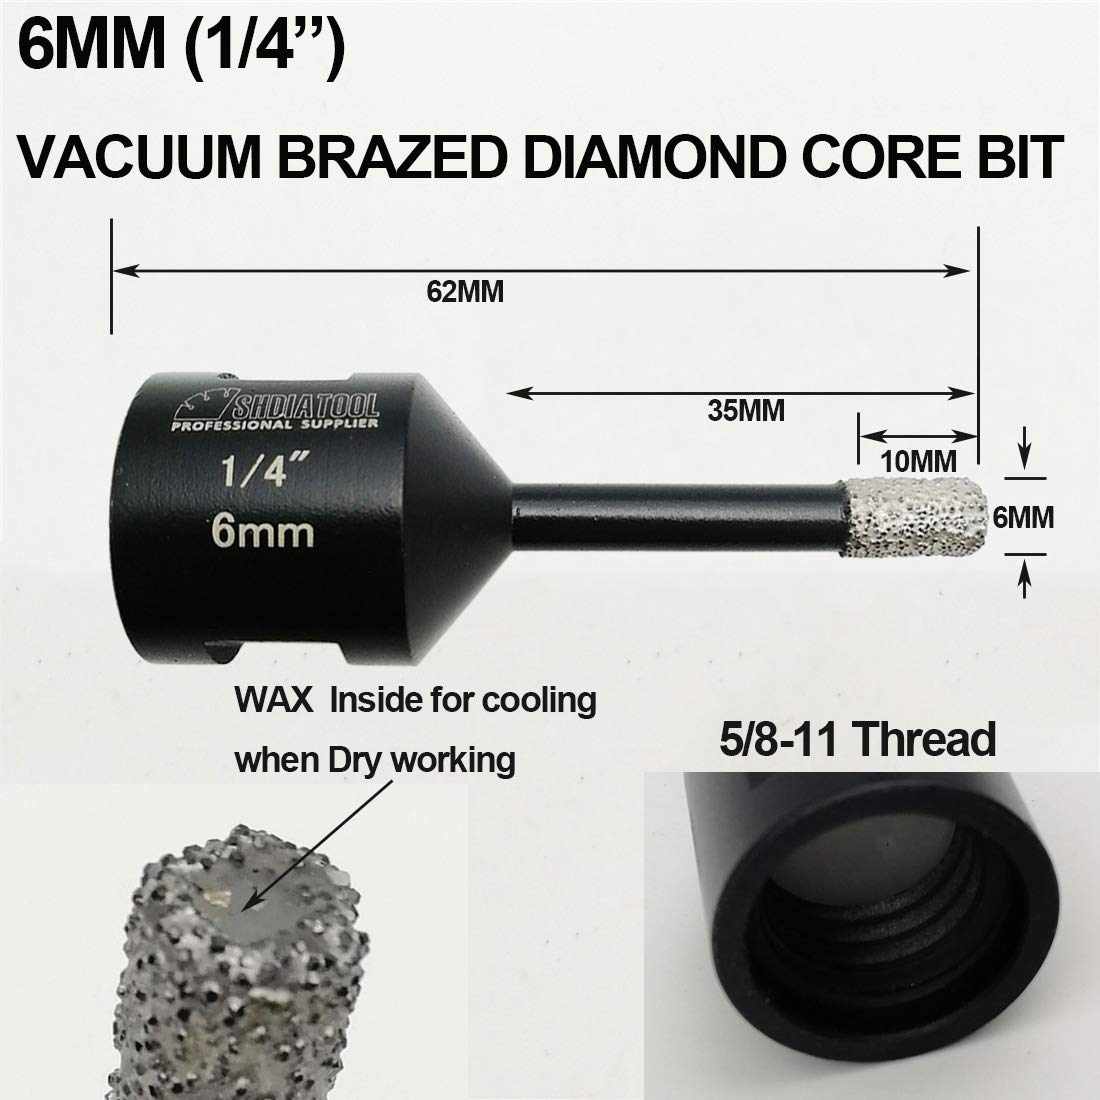 SHDIATOOL 2pcs 5mm Dry Diamond Drill Bits with 3//8 Inch Hex Shank for Granite Marble Ceramic Tile Vacuum Brazed Hole Saws